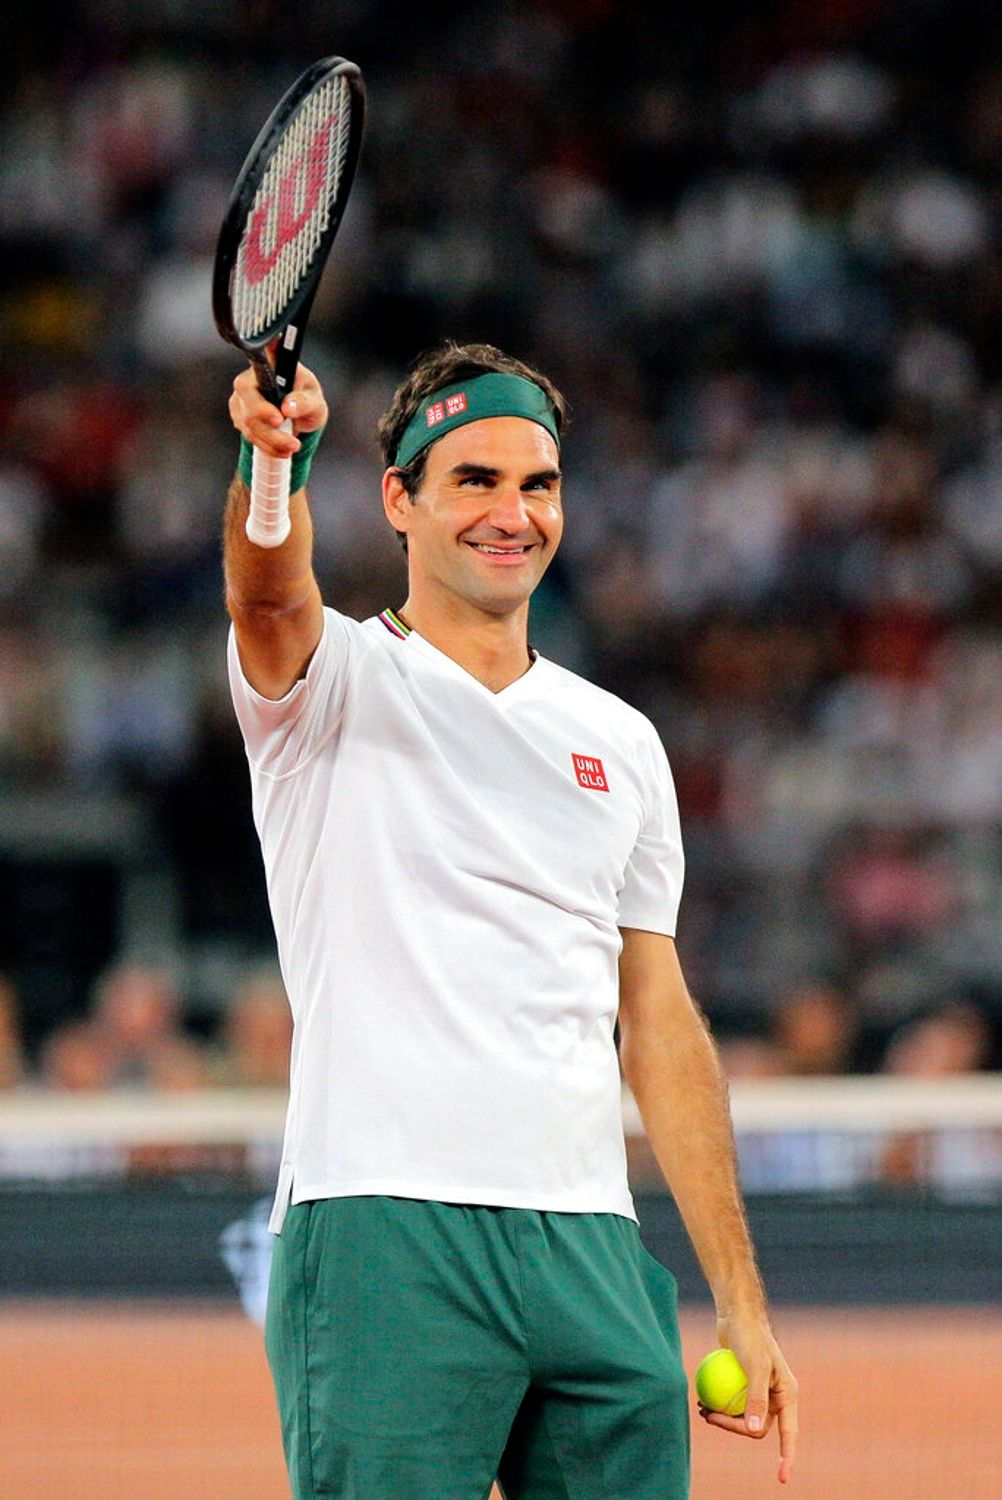 Pin By Helga Solis On Roger Federer In 2020 Roger Federer Stay In Shape Tennis